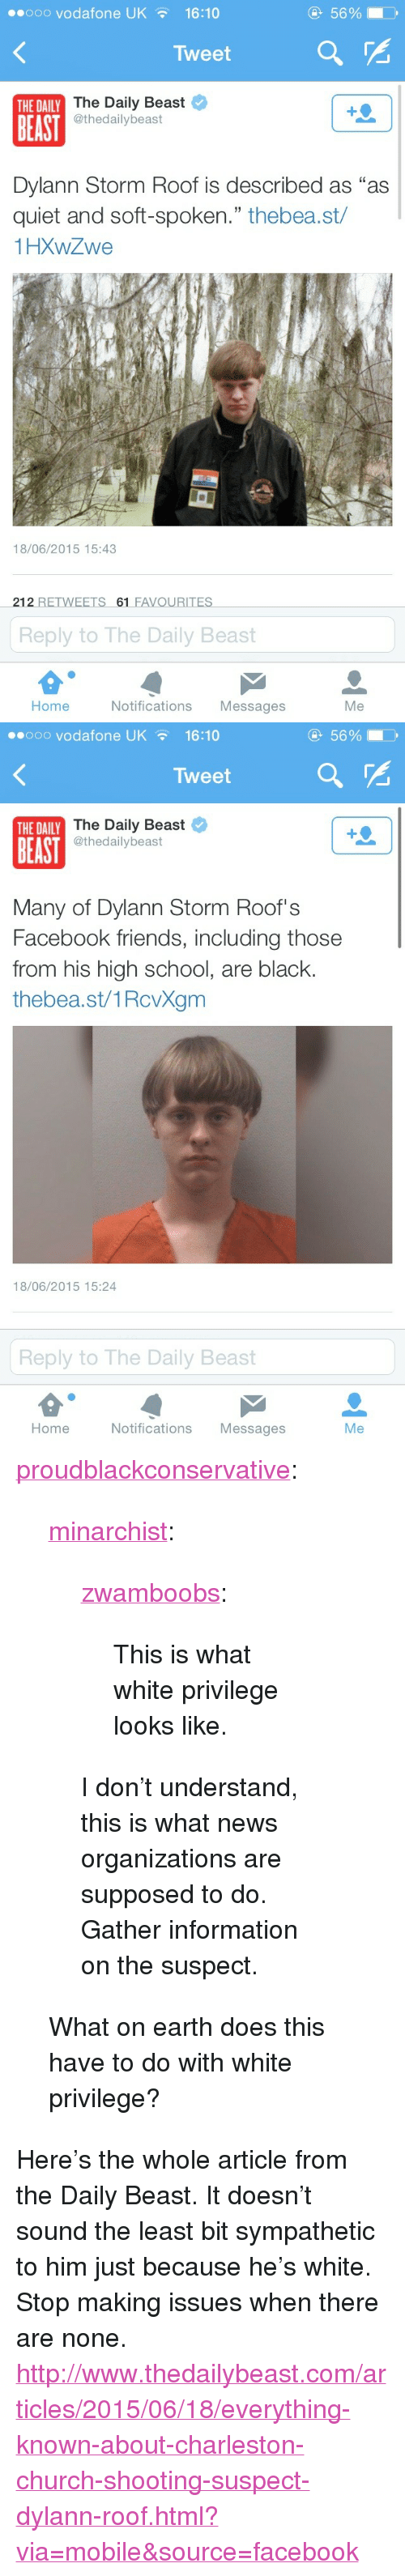 """Church, Facebook, and Friends: eooo vodafone UK16:10  5690  Tweet  The Daily Beast  @thedailybeast  THE DAILY  BEAST  Dylann Storm Roof is described as """"as  quiet and soft-spoken."""" thebea.st/  1HXWZwe  18/06/2015 15:43  212 RETWEETS 61 FAVOURITES  Reply to The Daily Beast  Home  Notifications Messages  Me   ..ooo vodafone UK  16:10  5690  Tweet  The Daily Beast  @thedailybeast  THE DAILY  BEAST  Many of Dylann Storm Roof's  Facebook friends, including those  from his high school, are black.  thebea.st/1RcvXgm  18/06/2015 15:24  Reply to The Daily Beast  Home  Notifications Messages  Me <p><a class=""""tumblr_blog"""" href=""""http://proudblackconservative.tumblr.com/post/121848653839/minarchist-zwamboobs-this-is-what-white"""">proudblackconservative</a>:</p>  <blockquote><p><a class=""""tumblr_blog"""" href=""""http://minarchist.tumblr.com/post/121847656894/zwamboobs-this-is-what-white-privilege-looks"""">minarchist</a>:</p>  <blockquote><p><a class=""""tumblr_blog"""" href=""""http://zwamboobs.tumblr.com/post/121841004836/this-is-what-white-privilege-looks-like"""">zwamboobs</a>:</p>  <blockquote><p>This is what white privilege looks like.</p></blockquote>  <p>I don't understand, this is what news organizations are supposed to do. Gather information on the suspect.</p></blockquote>  <p>What on earth does this have to do with white privilege?<br/></p></blockquote>  <p>Here's the whole article from the Daily Beast. It doesn't sound the least bit sympathetic to him just because he's white. Stop making issues when there are none. <a href=""""http://www.thedailybeast.com/articles/2015/06/18/everything-known-about-charleston-church-shooting-suspect-dylann-roof.html?via=mobile&source=facebook"""">http://www.thedailybeast.com/articles/2015/06/18/everything-known-about-charleston-church-shooting-suspect-dylann-roof.html?via=mobile&source=facebook</a><br/></p>"""